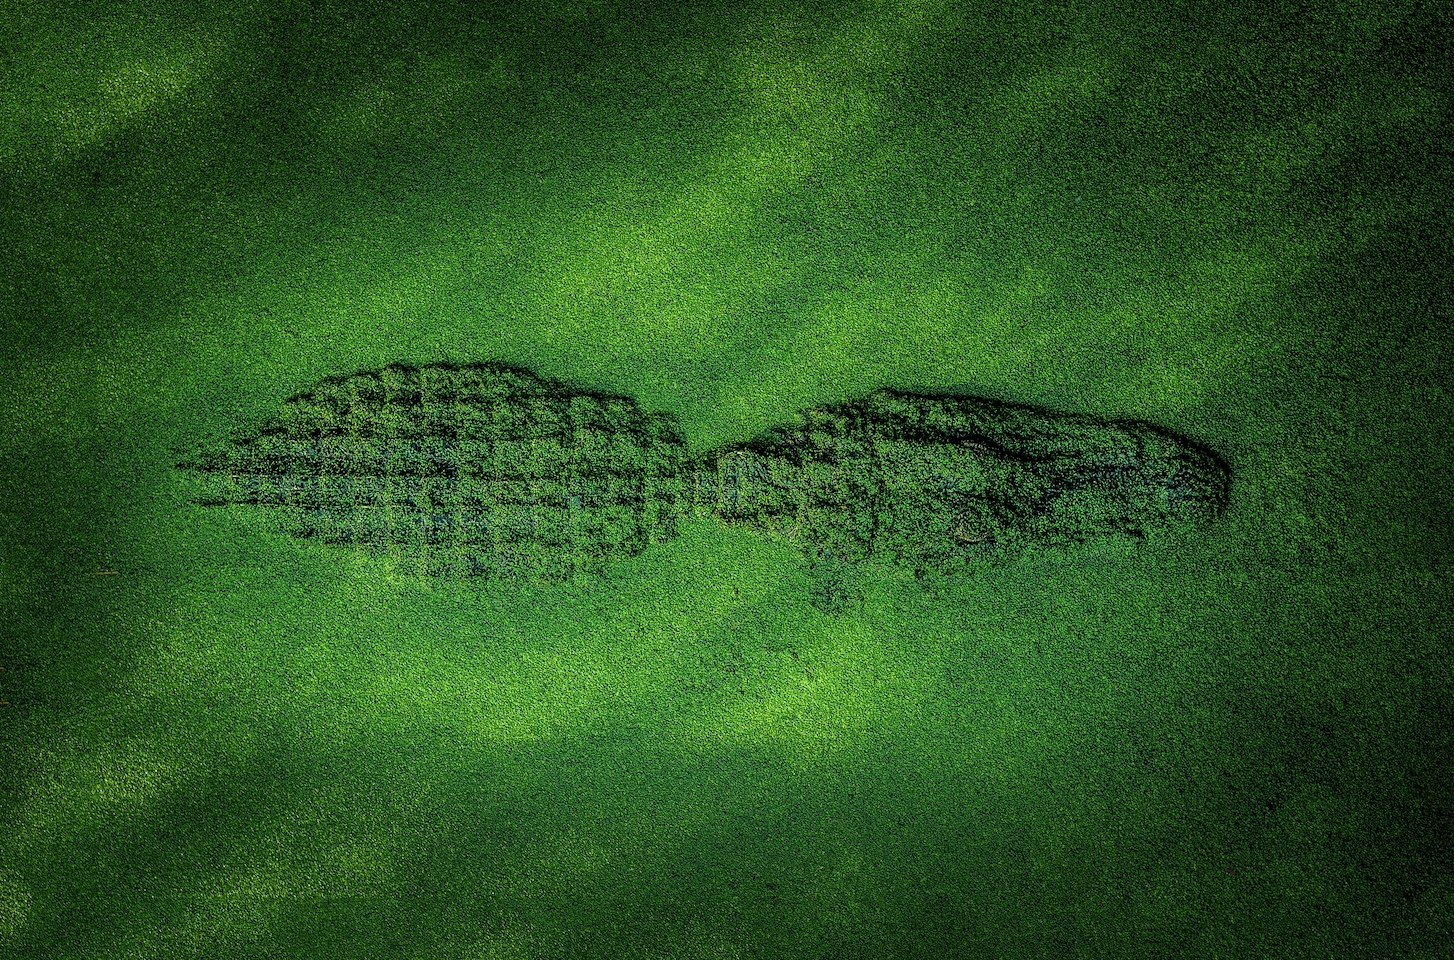 VGT logo: crocodile lurking in duckweed water, hidden wild energies waiting to emerge.